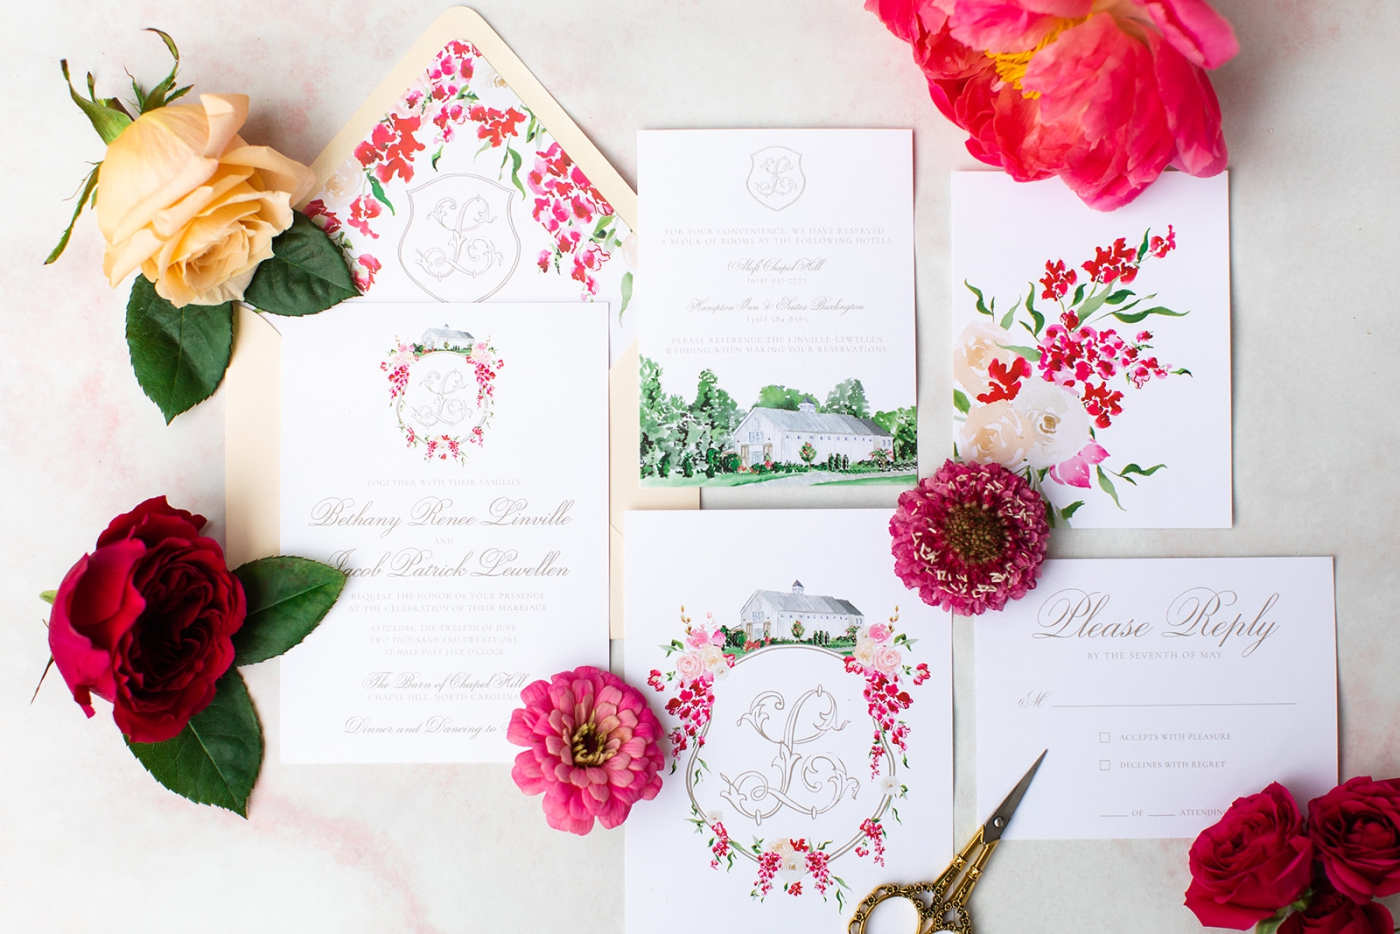 A breakdown of how much wedding invitations cost